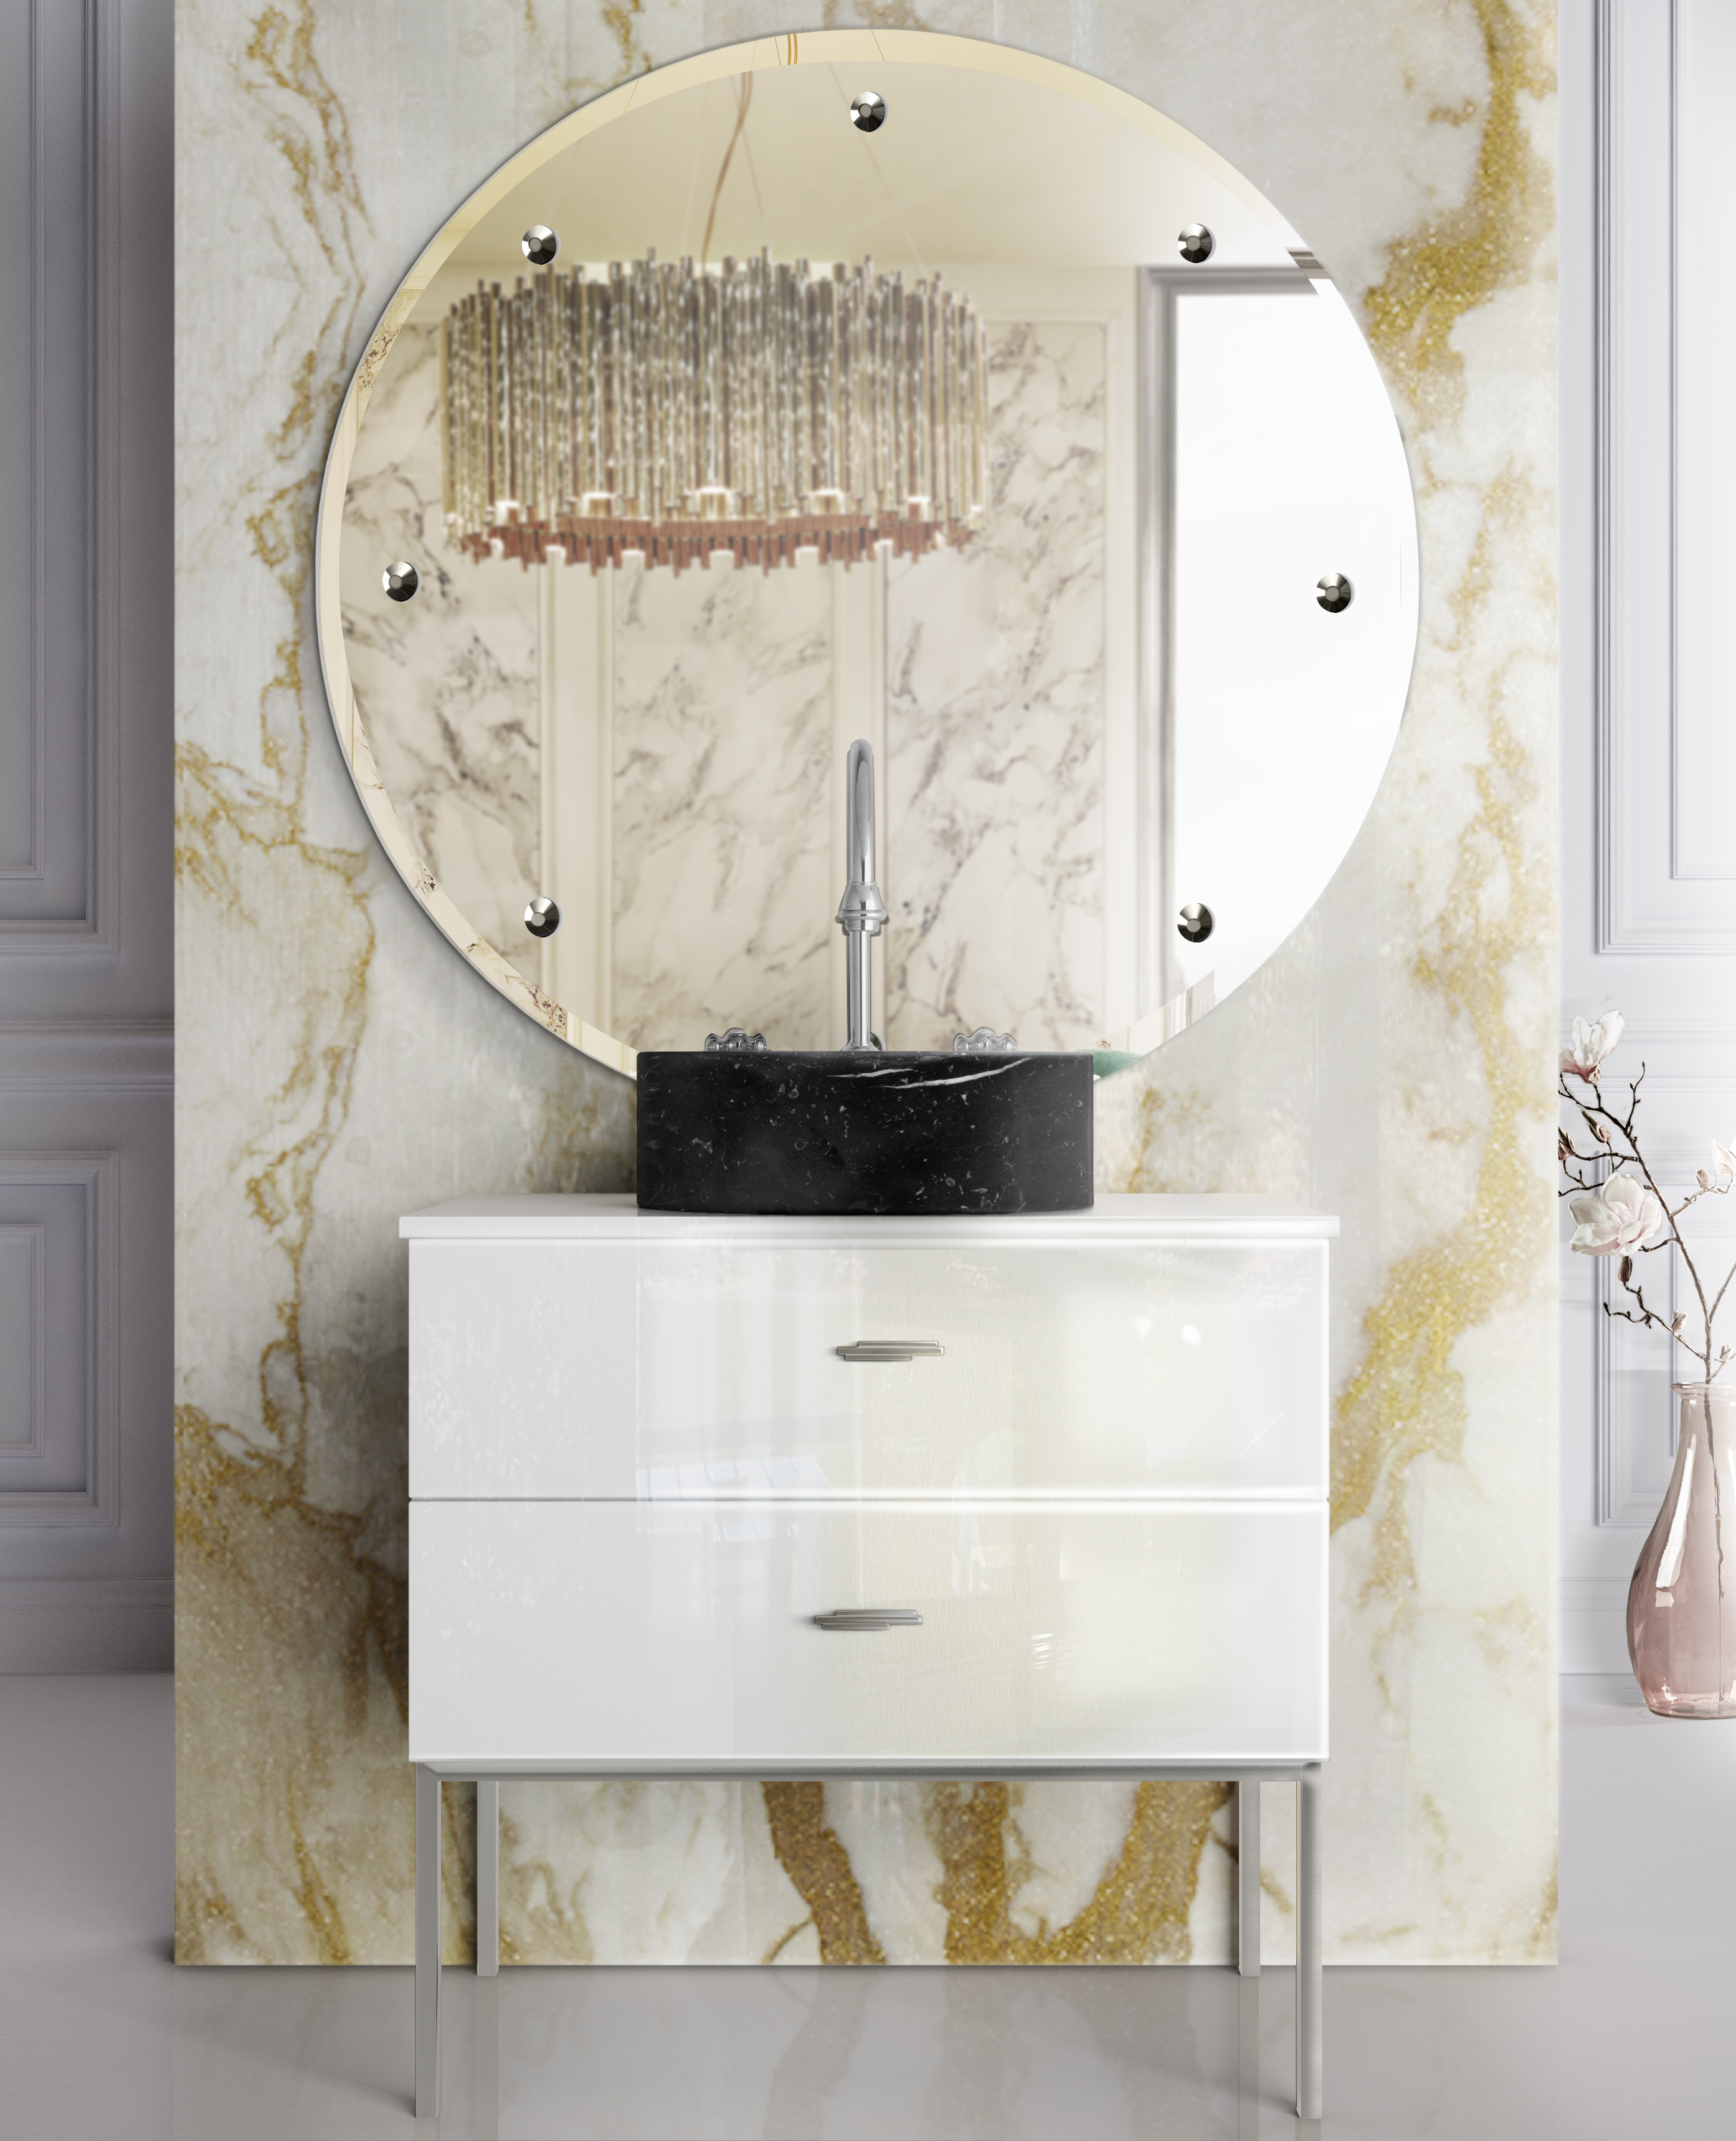 Exquisite Sinks of Maison Valentina The New Exquisite Sinks of Maison Valentina 49 assemble to order ambience 1 HR